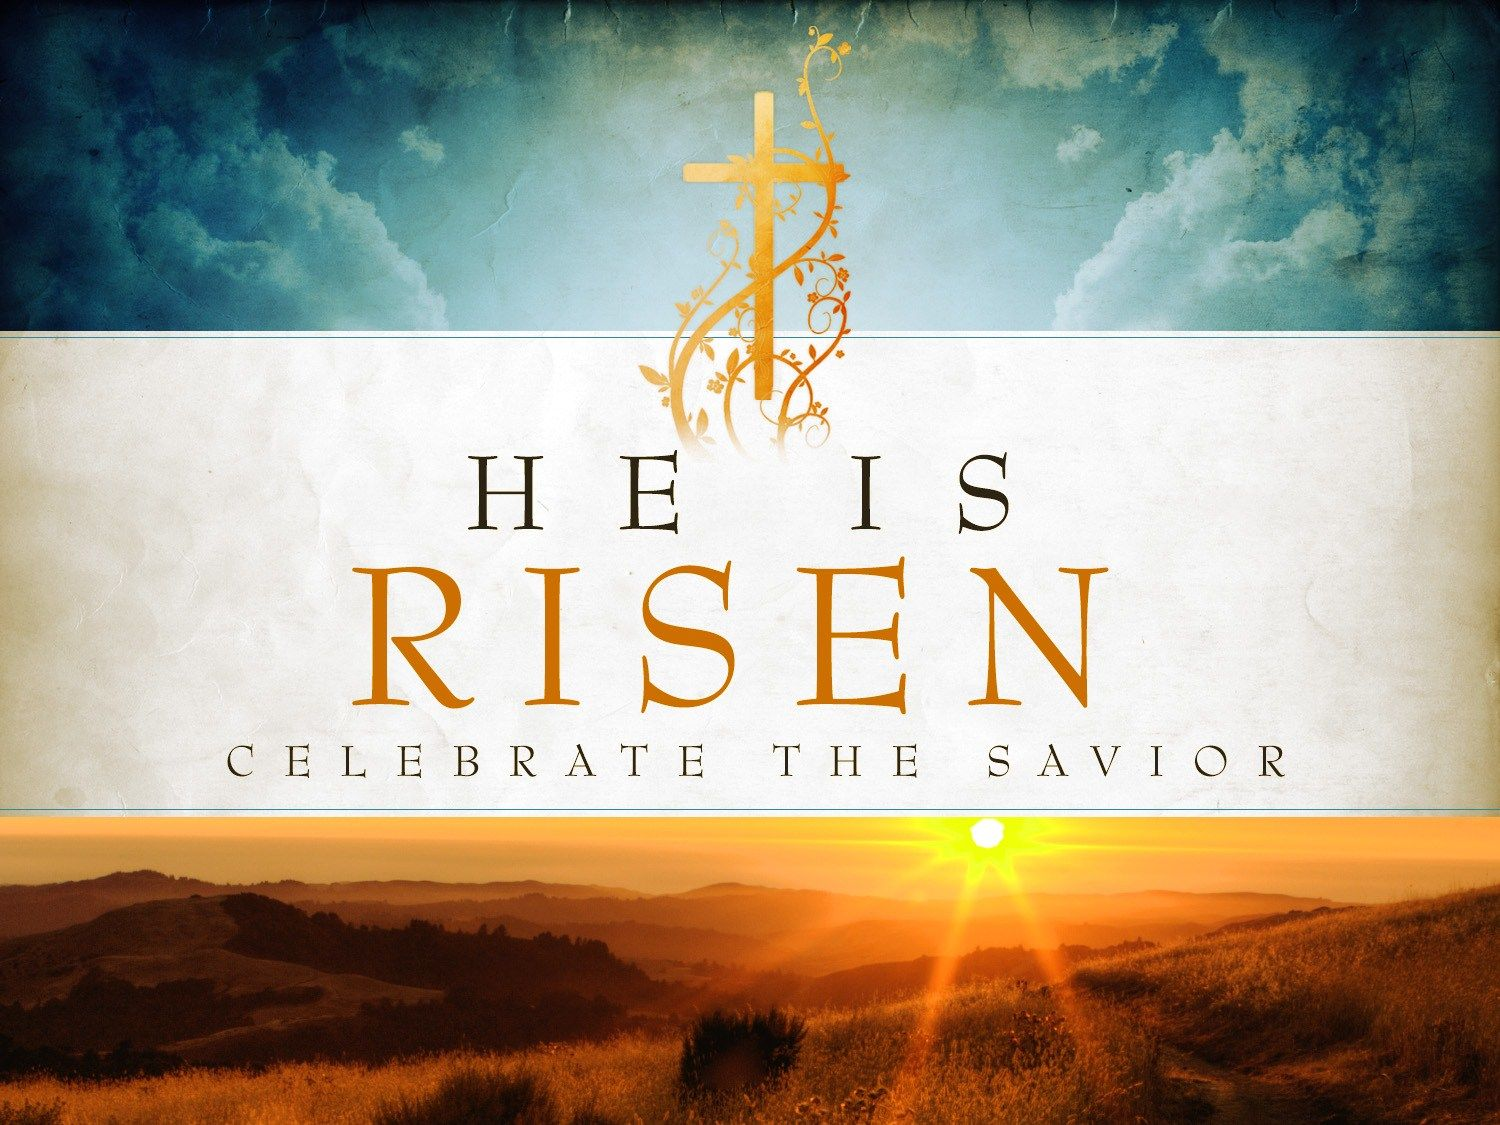 Christian Easter Quotes Religious Easter Graphics  Free Christian Wallpapers Download